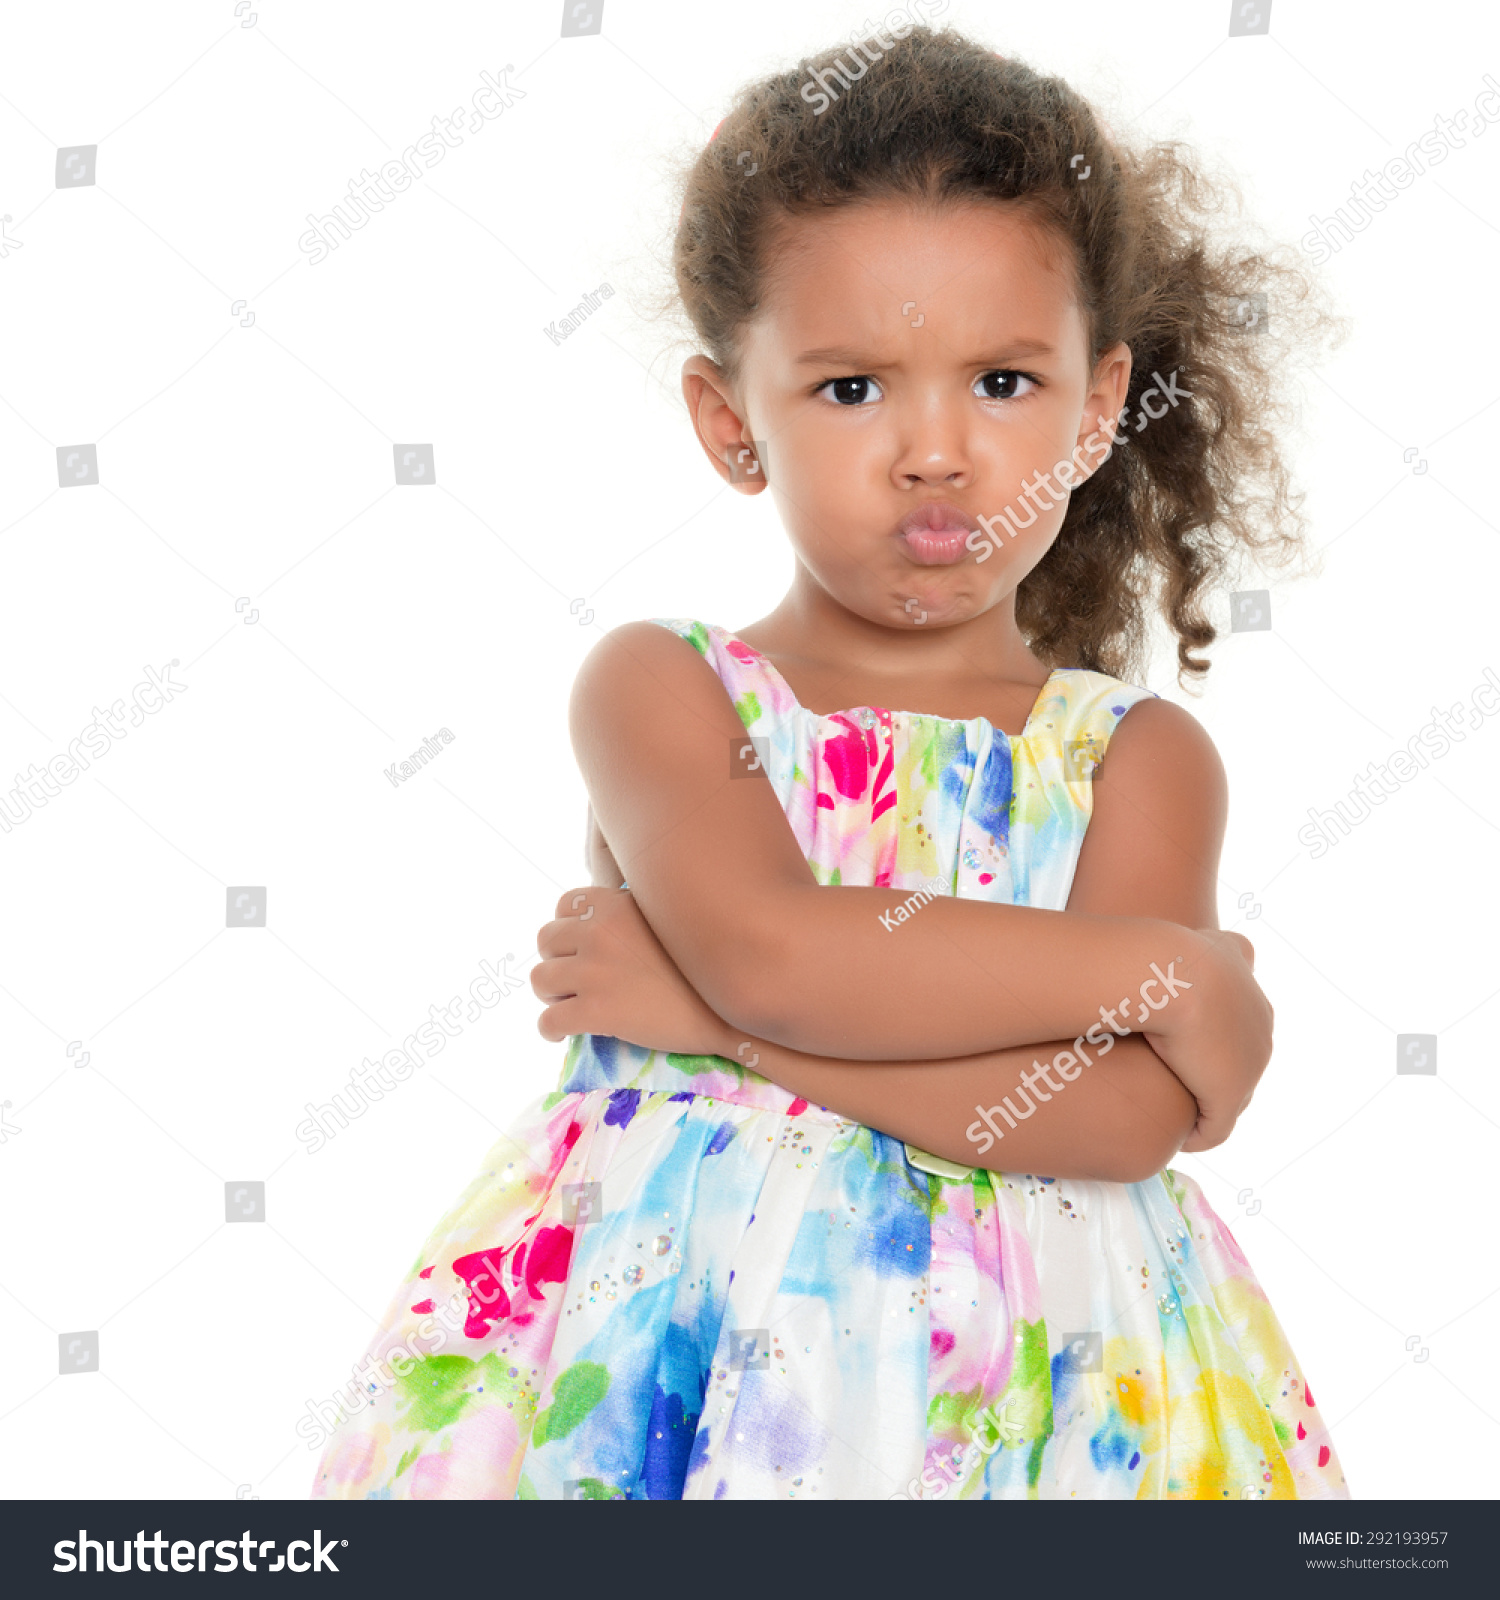 Grimace face clip art stock photo woman pulls a face in upset - Cute Small Girl Making A Funny Angry Face Isolated On White